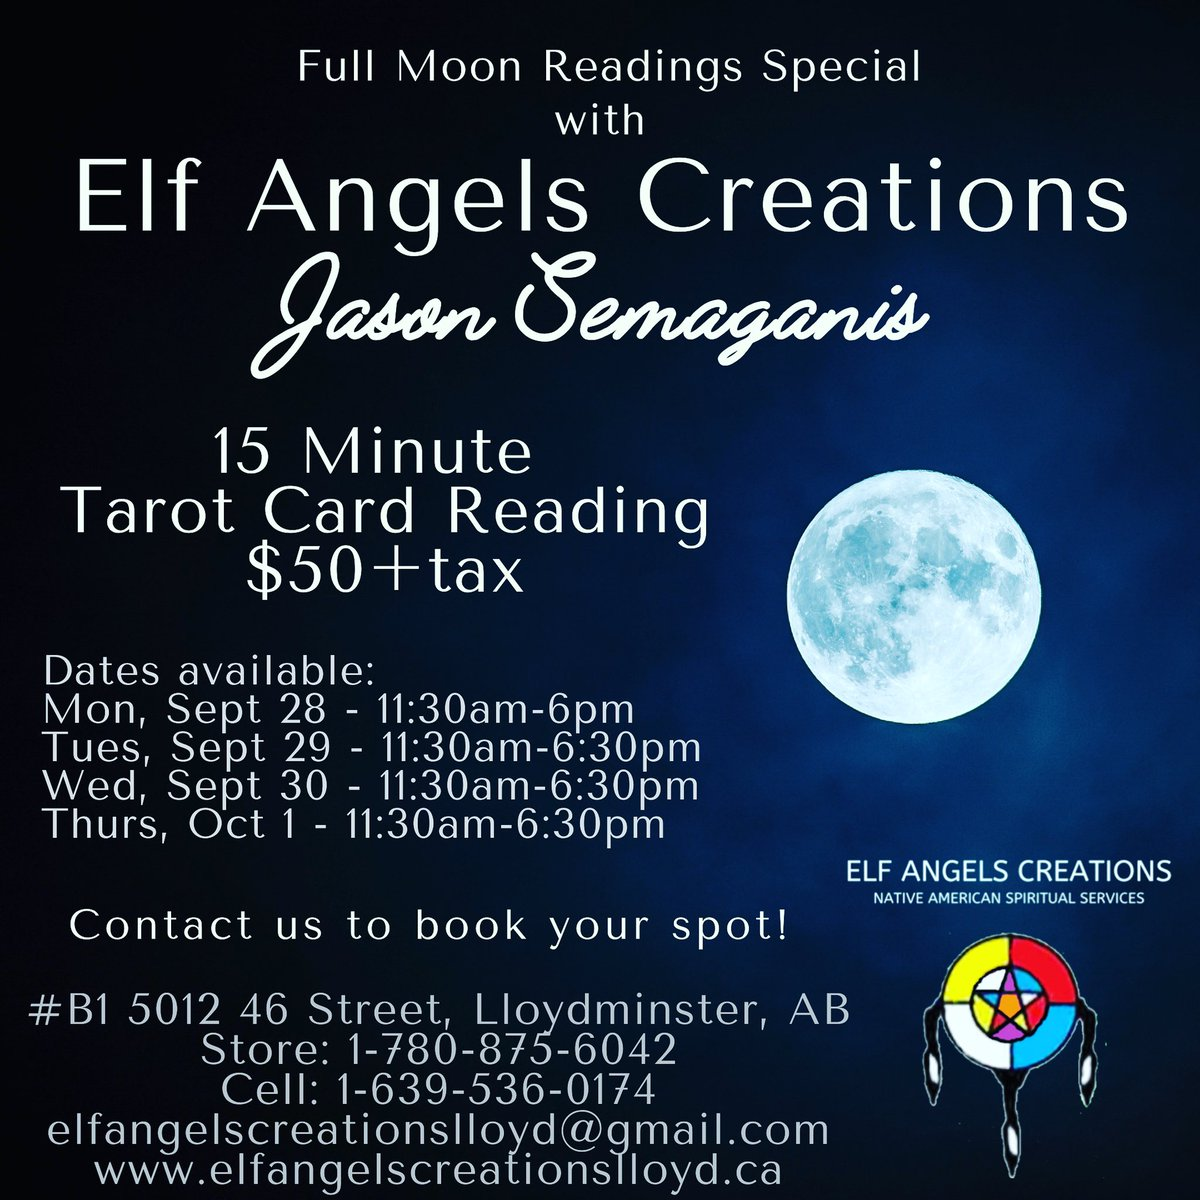 Full Moon Readings with Jason Semaganis! A 15 Minute Tarot Card Reading is $50+tax! 🌝  https://t.co/m0cixiZnQc #B1 5012 46 Street, Lloydminster Office: 1 (780) 875-6042 Cell: 1 (639) 536-0174 elfangelscreationslloyd@gmail.com  #FullMoon #Readings #Tarot #Special #Sale #SK #AB https://t.co/NmB979LZ0j